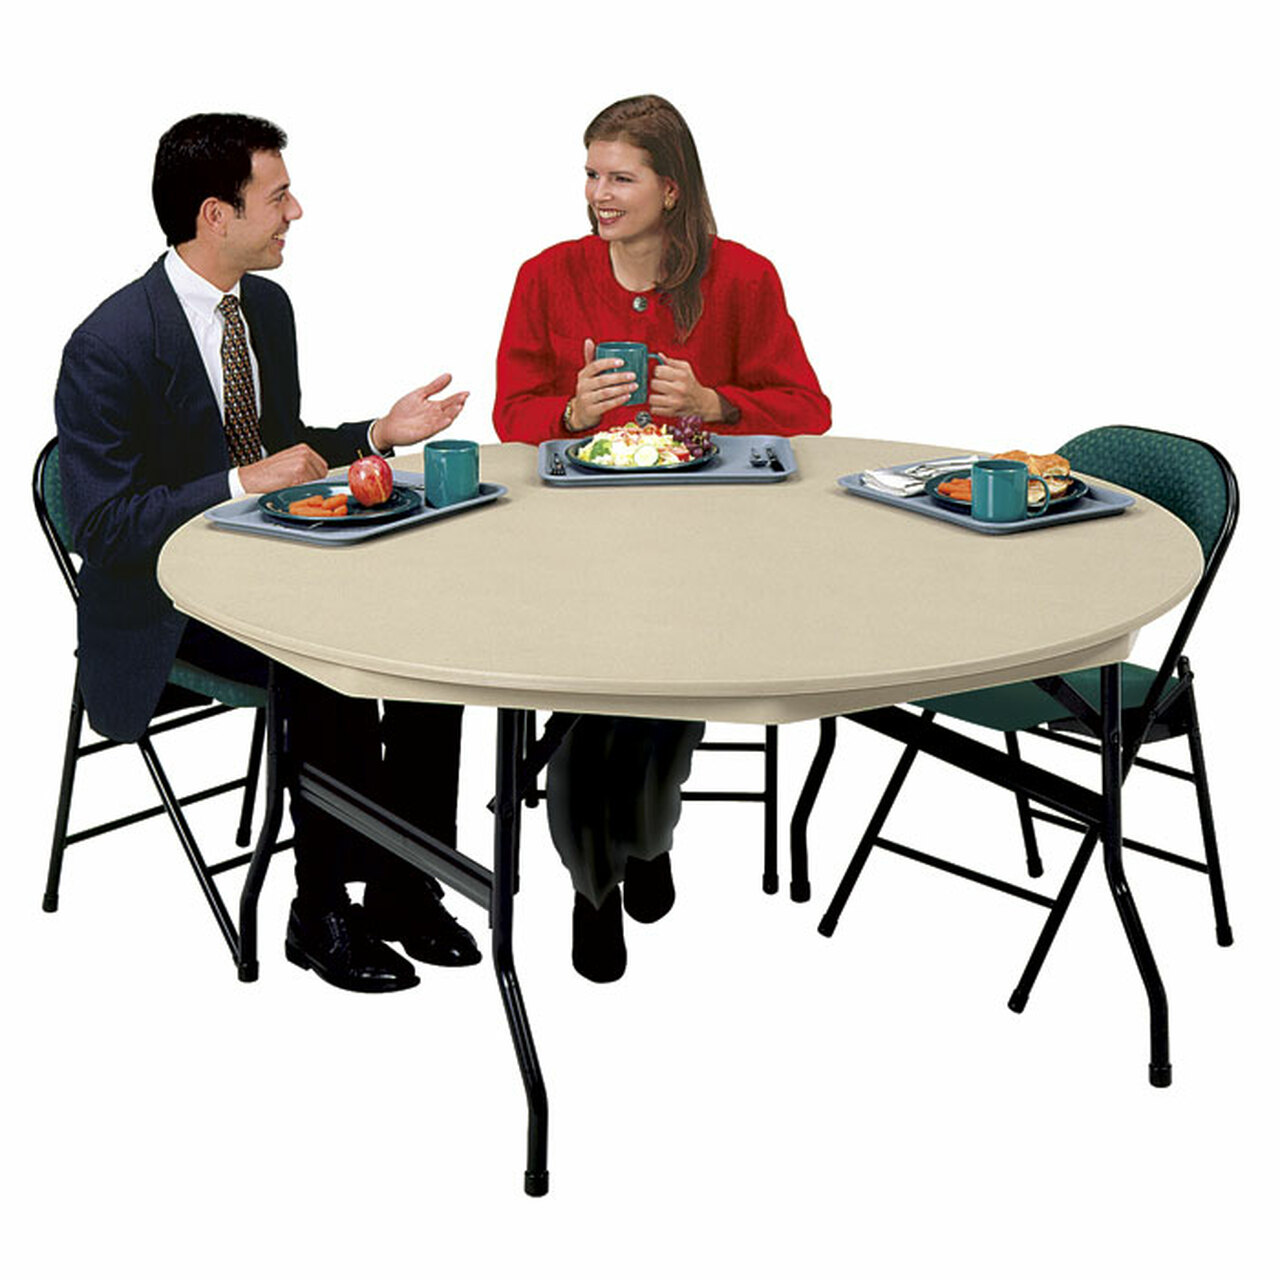 - DLR60 Lightweight Folding Table 60 Inch Round L Affordable Folding